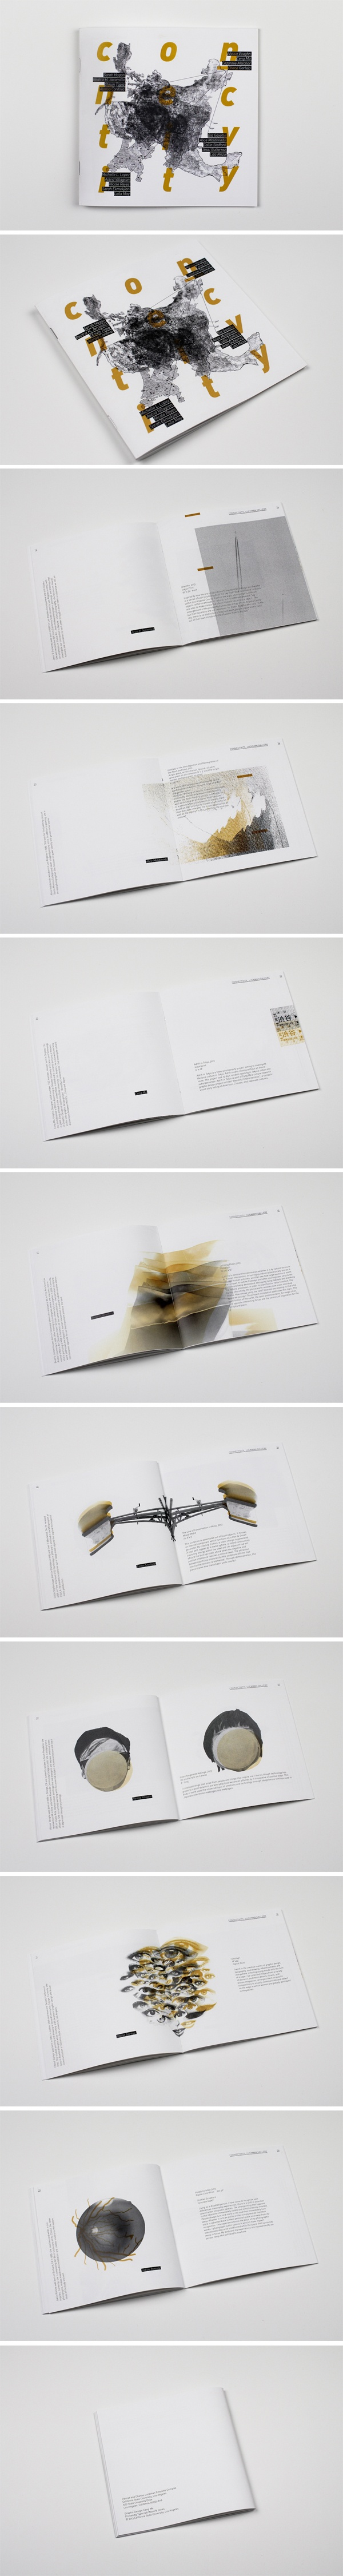 Catalogue Design By Ceng Ma via www.be.net/cengma | Book 本